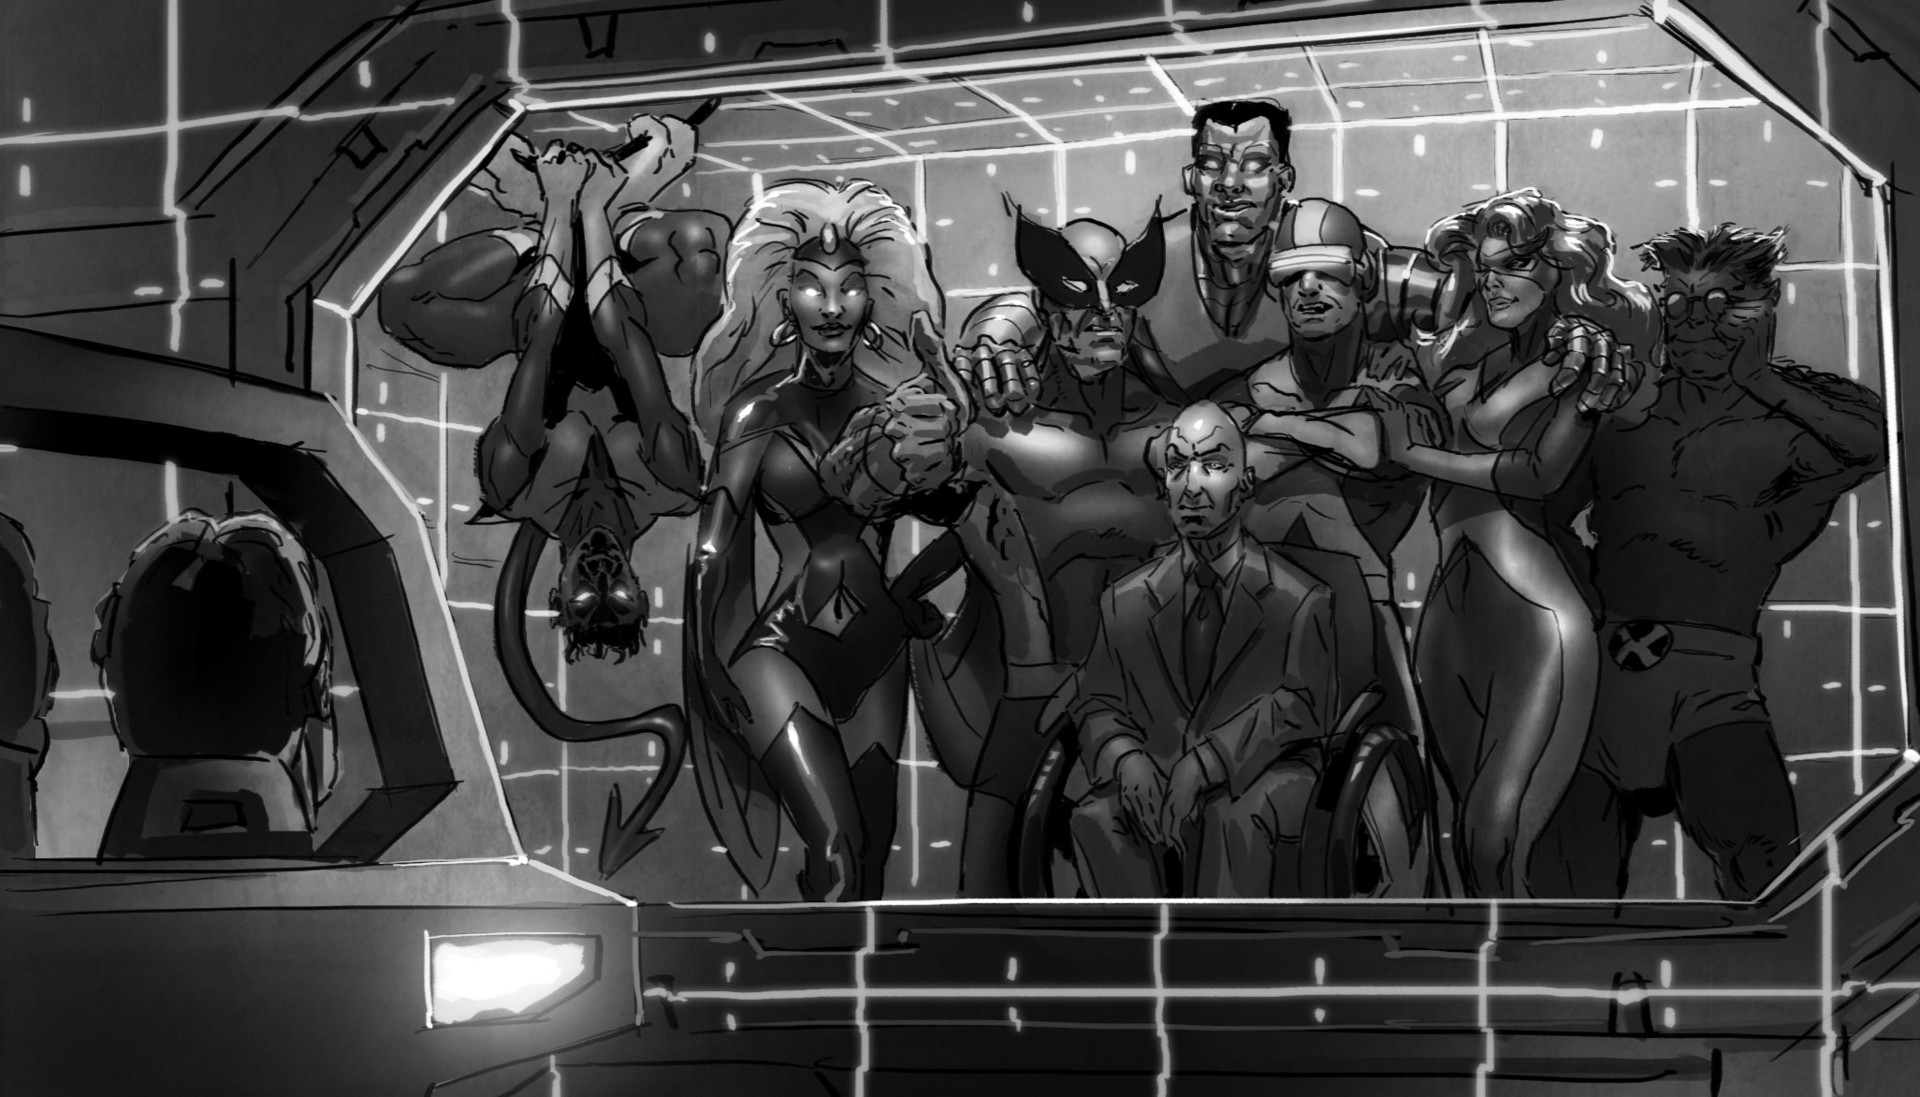 --the illusion is dispelled, revealing that we are in the Danger Room with the gathered X-Men. It has been our first test at Dr. Xavier's school. And we passed!